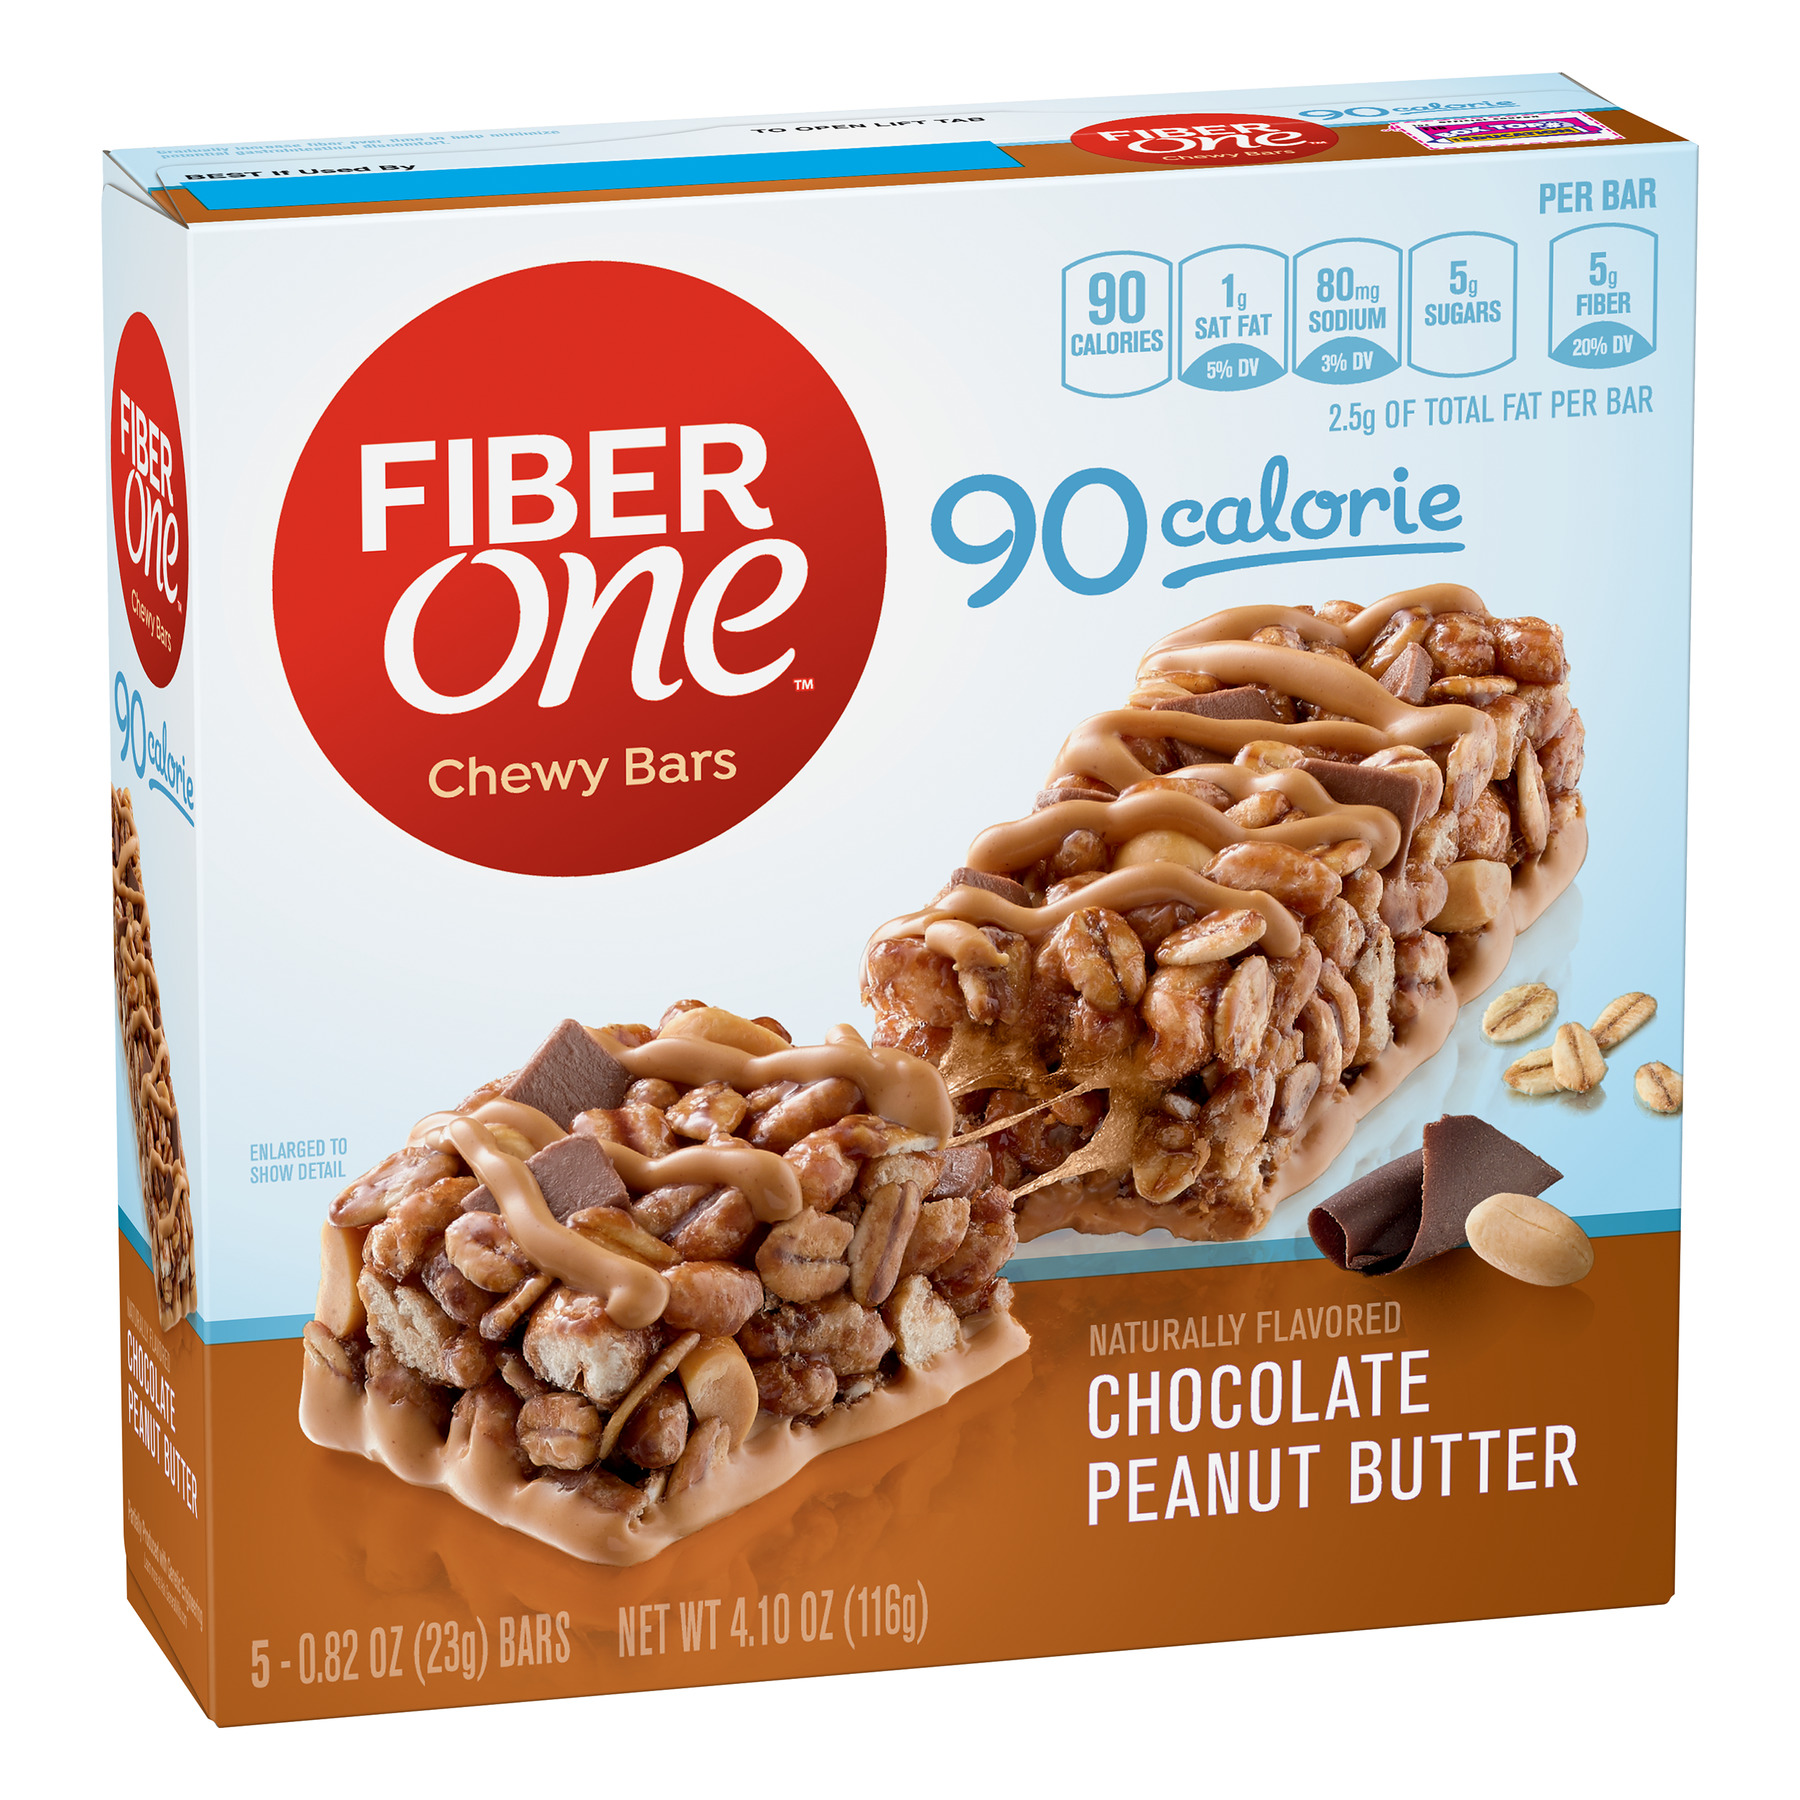 Fiber One 90 Calorie Chocolate Peanut Butter Bars, 4.1 oz